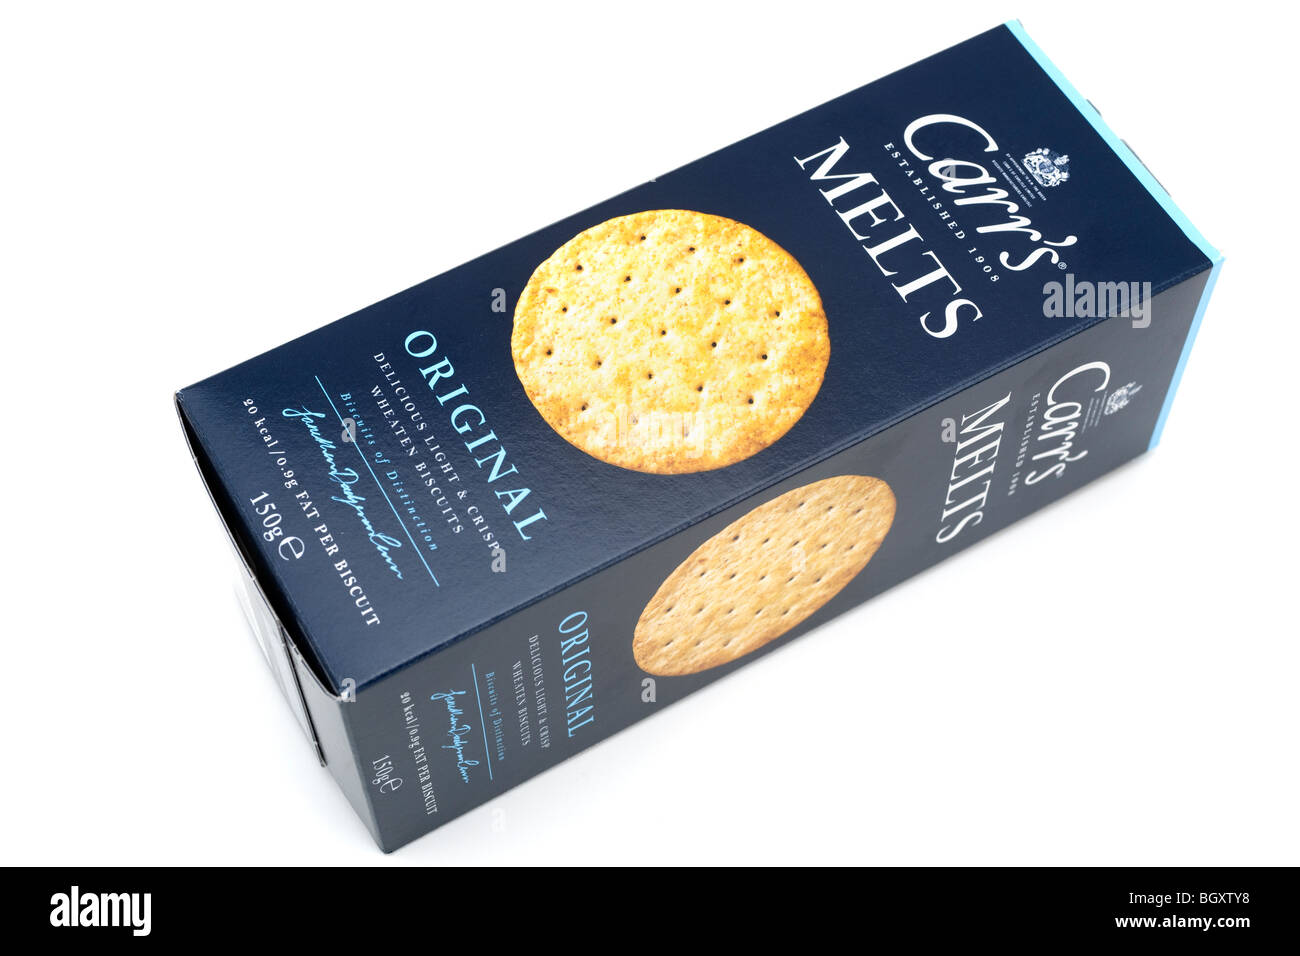 Box of Carr's original melts wheaten biscuits - Stock Image